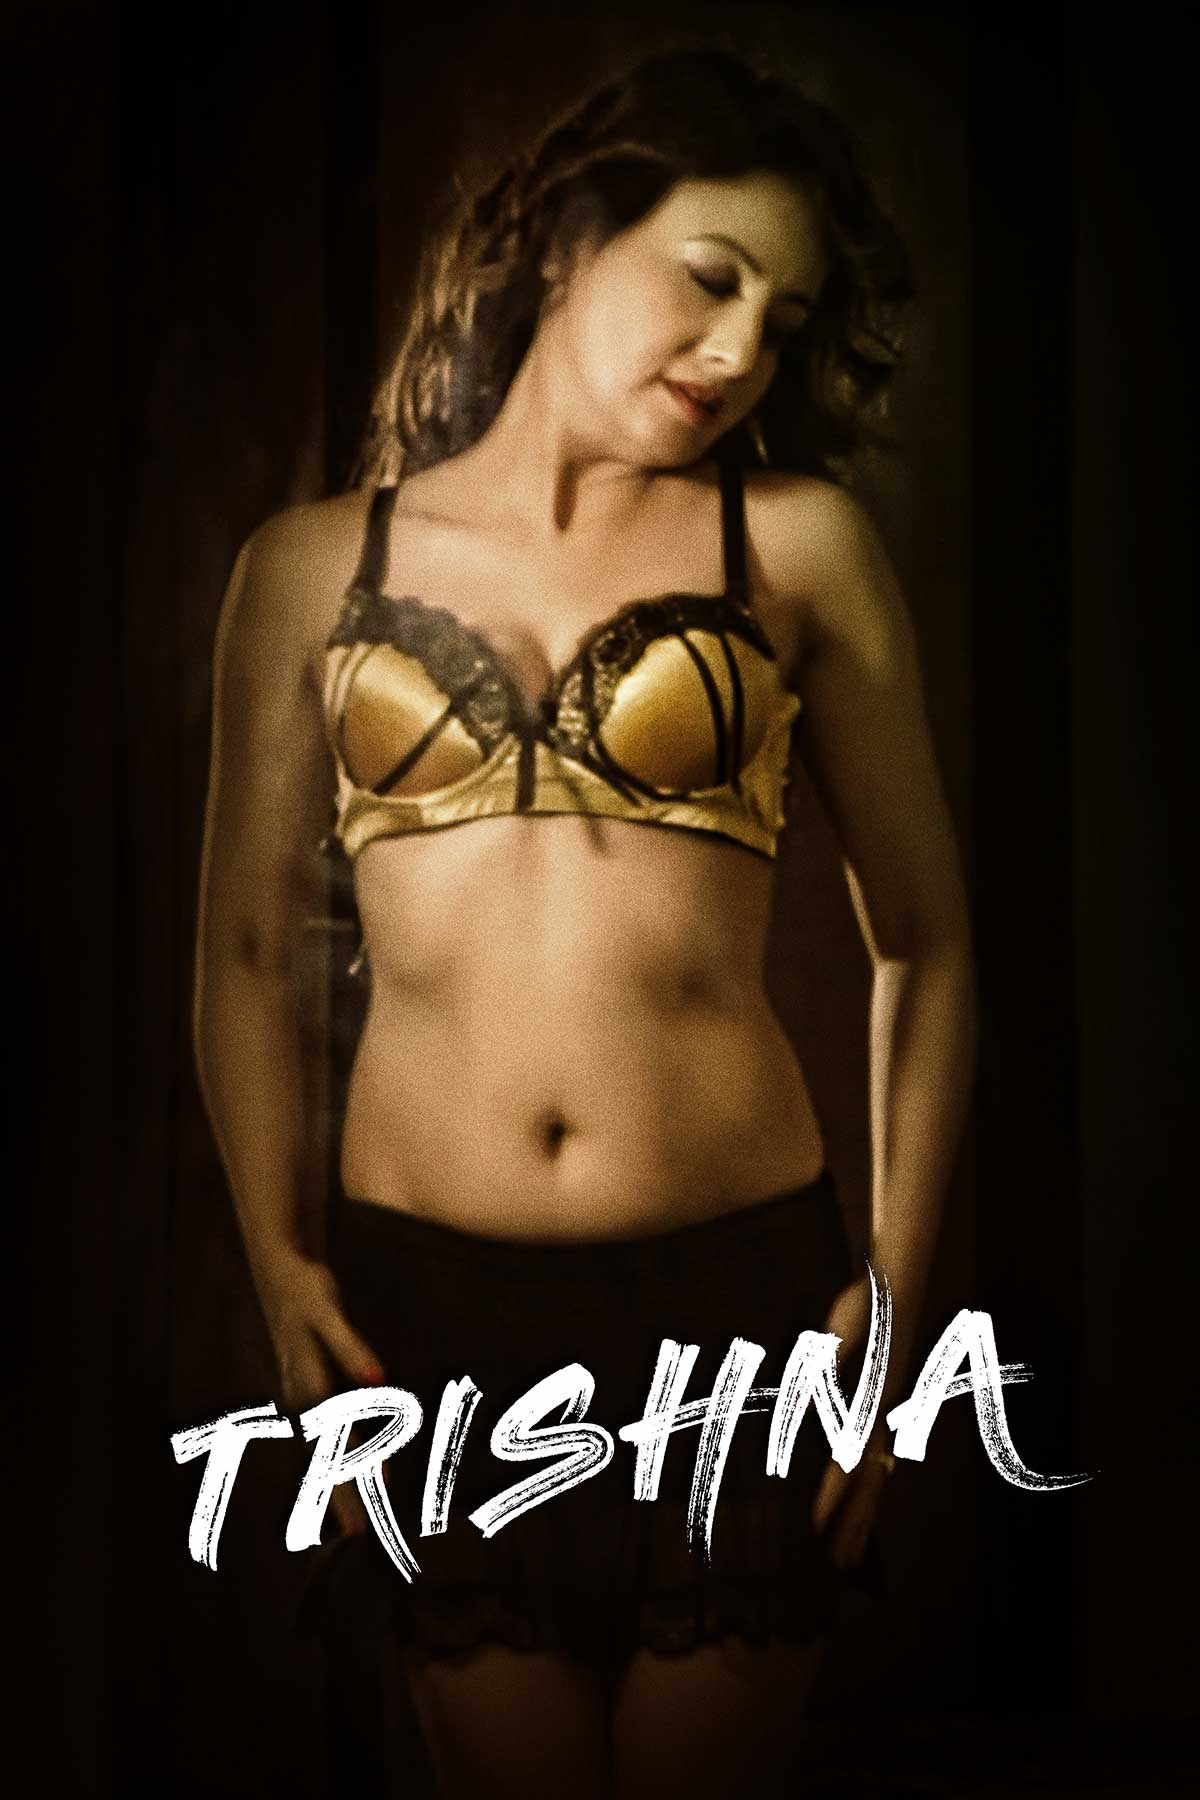 Trishna 2020 Hindi Web Series 720p HDRip 800MB Download